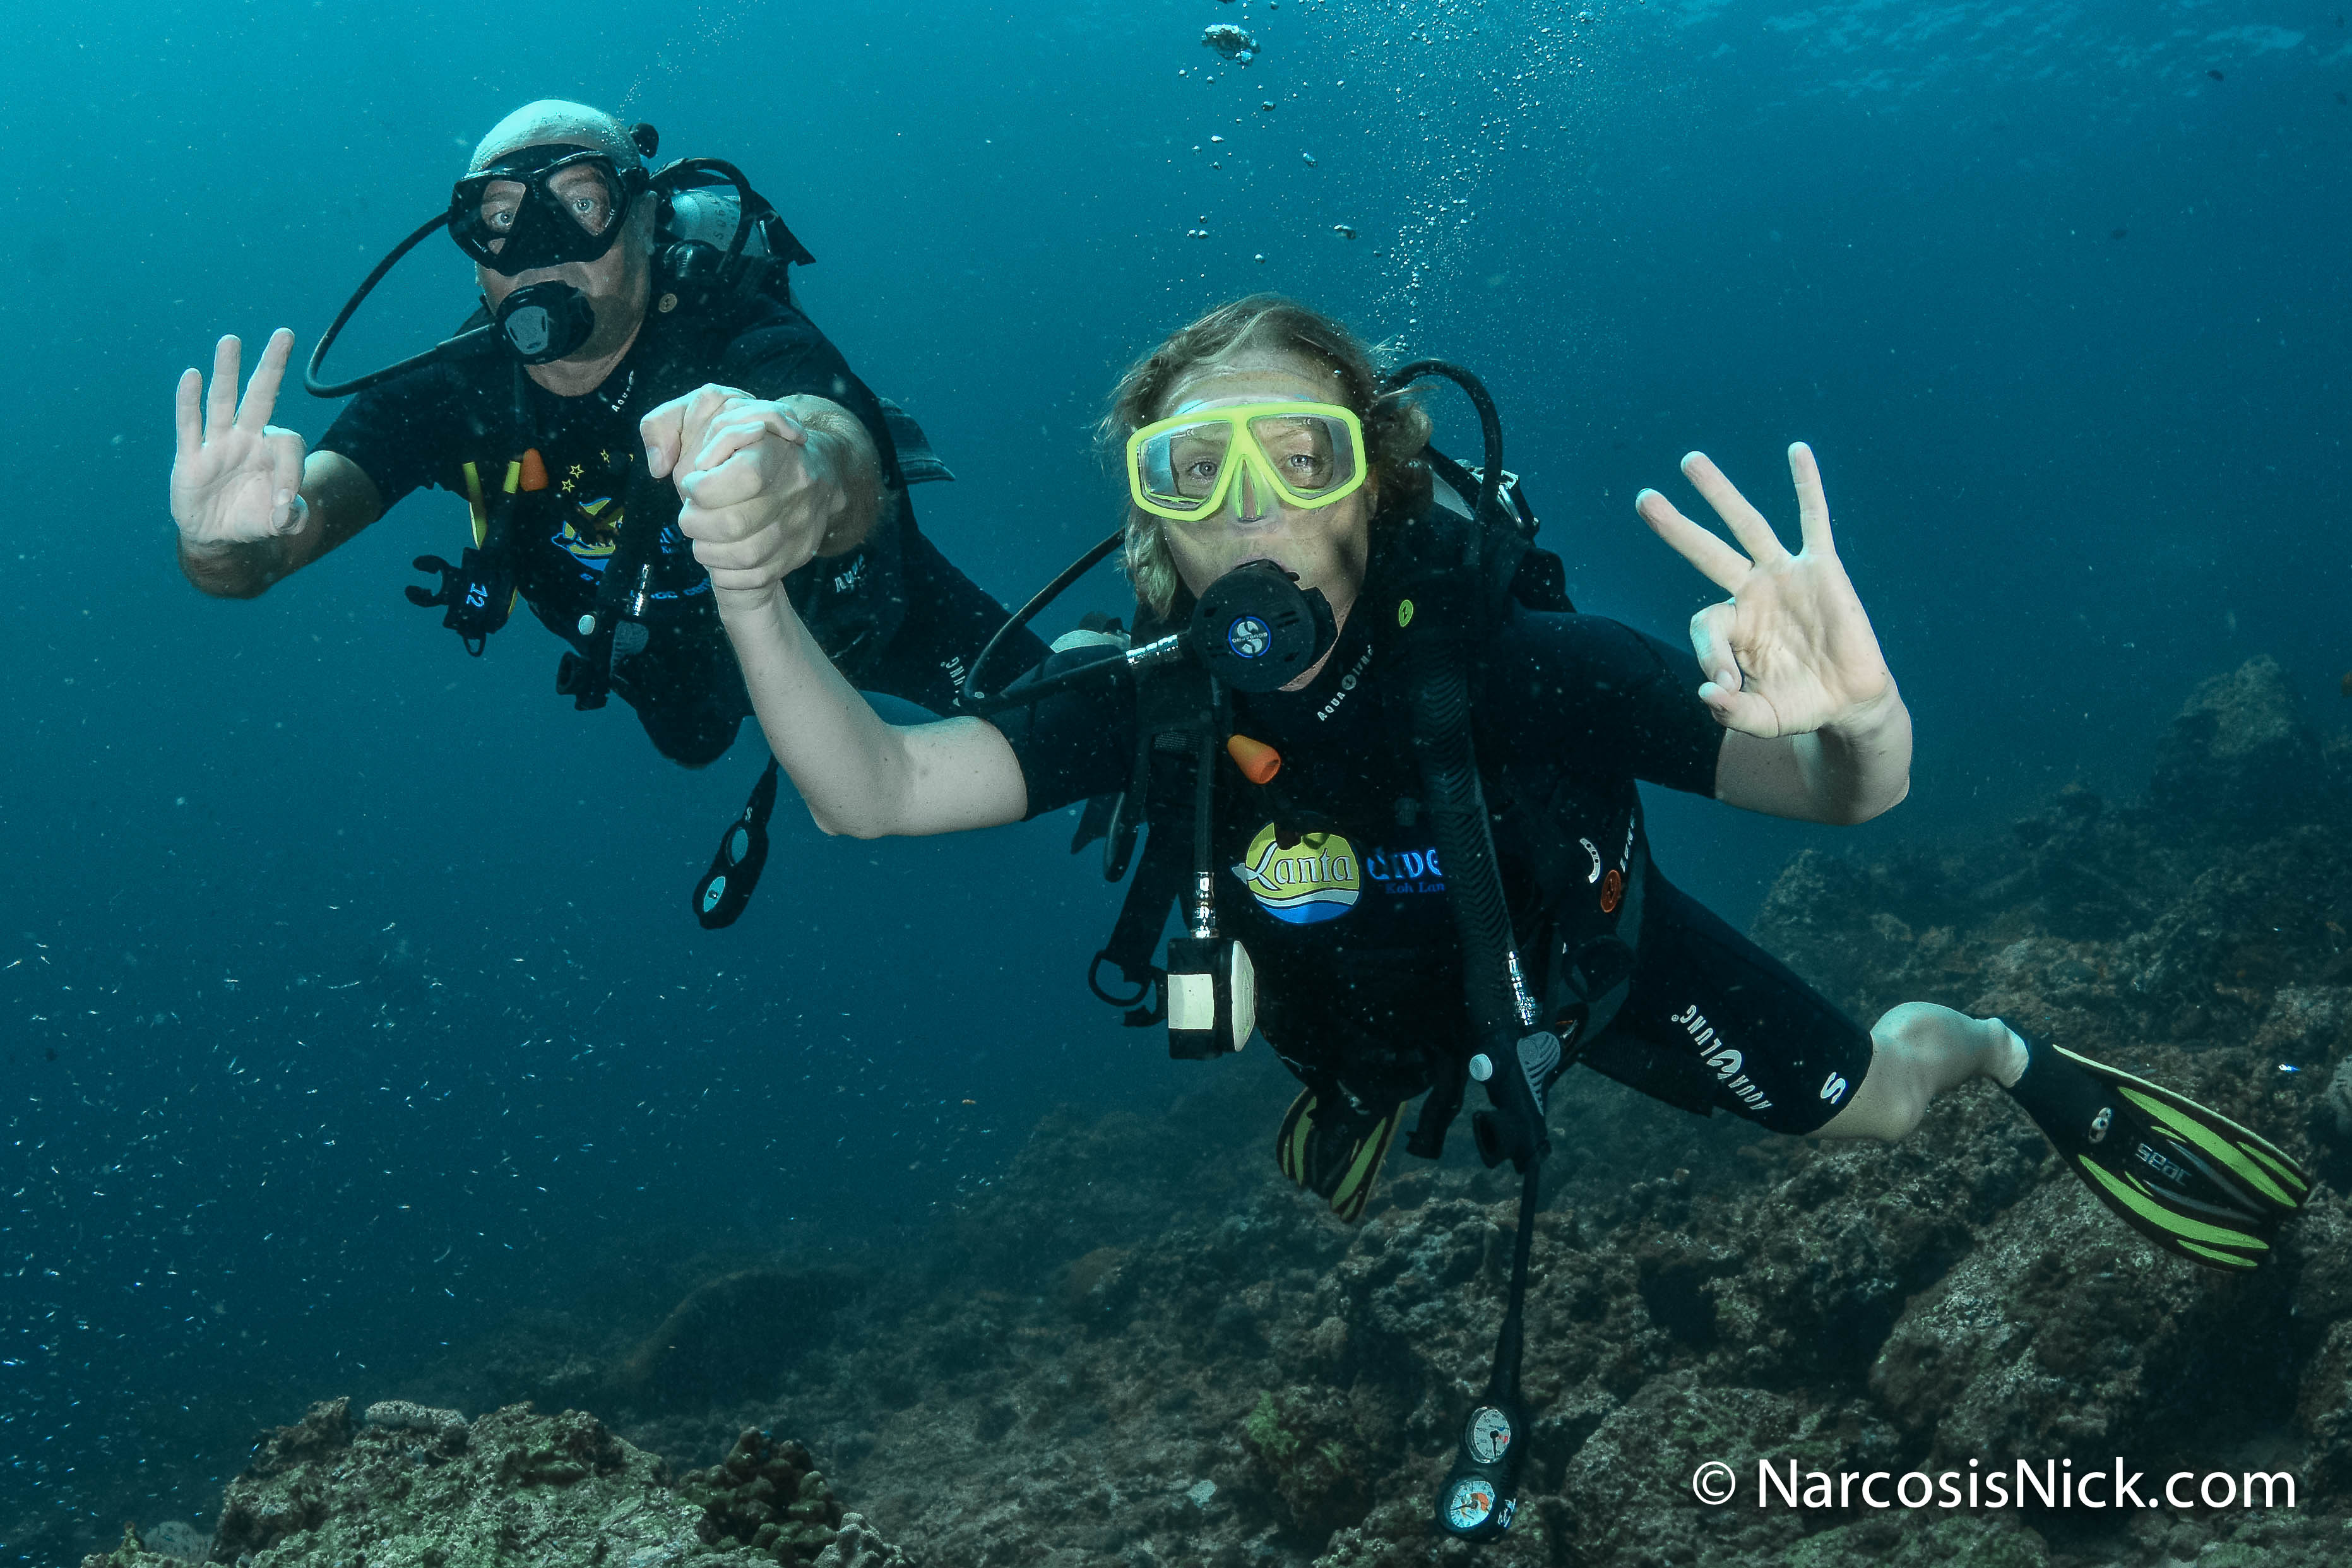 Dived - Potriat Photography - My Day job - Narcosis Nick